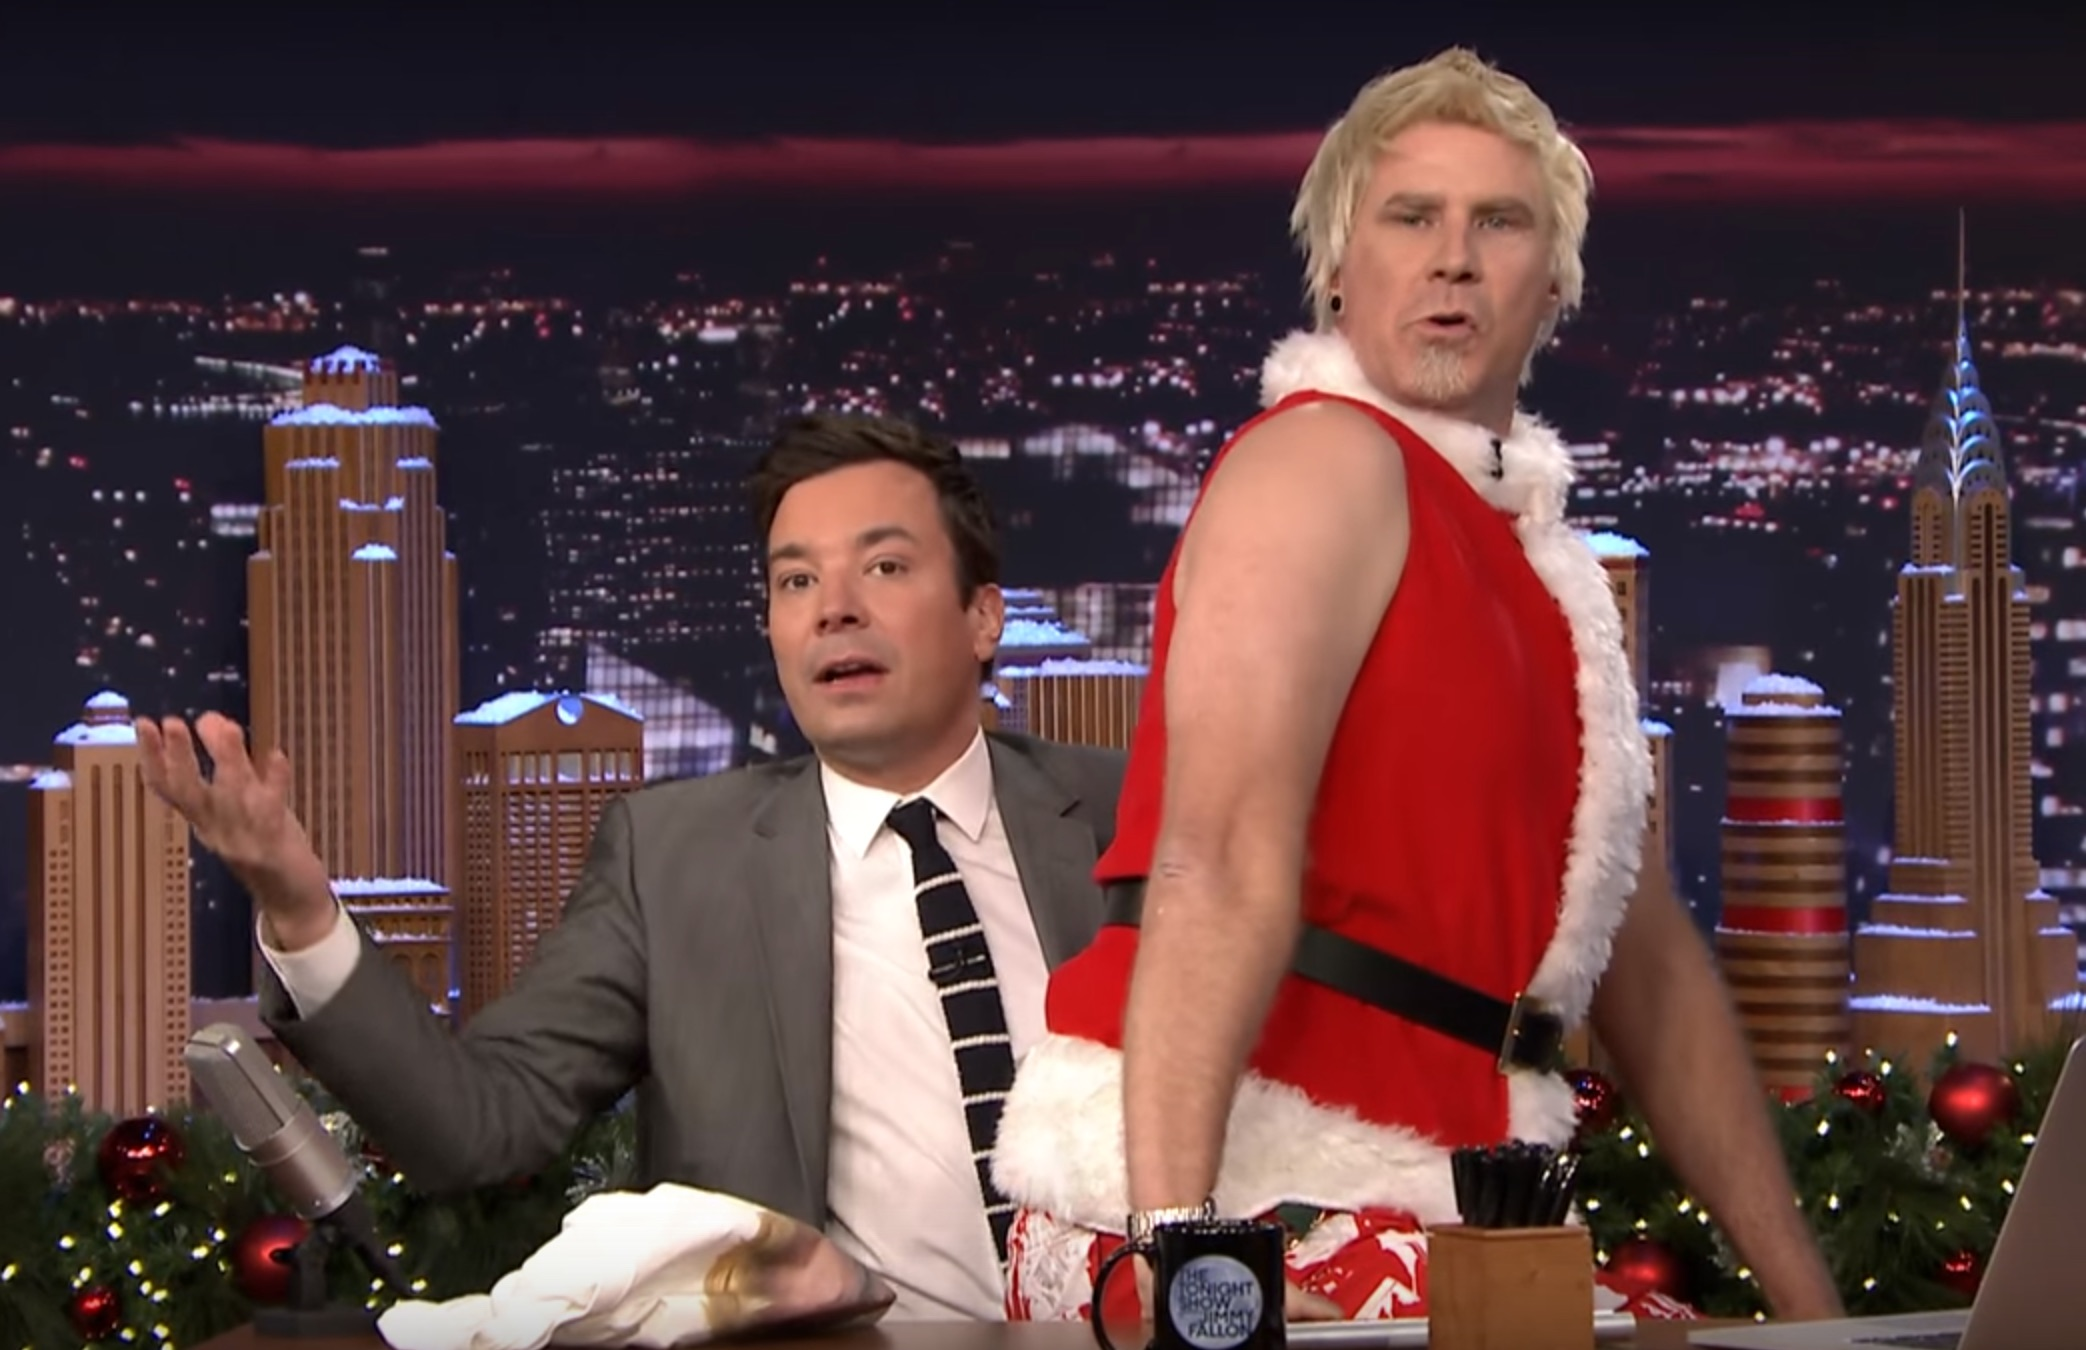 Will Ferrell is the new Santa Claus and he's making so many hilarious changes